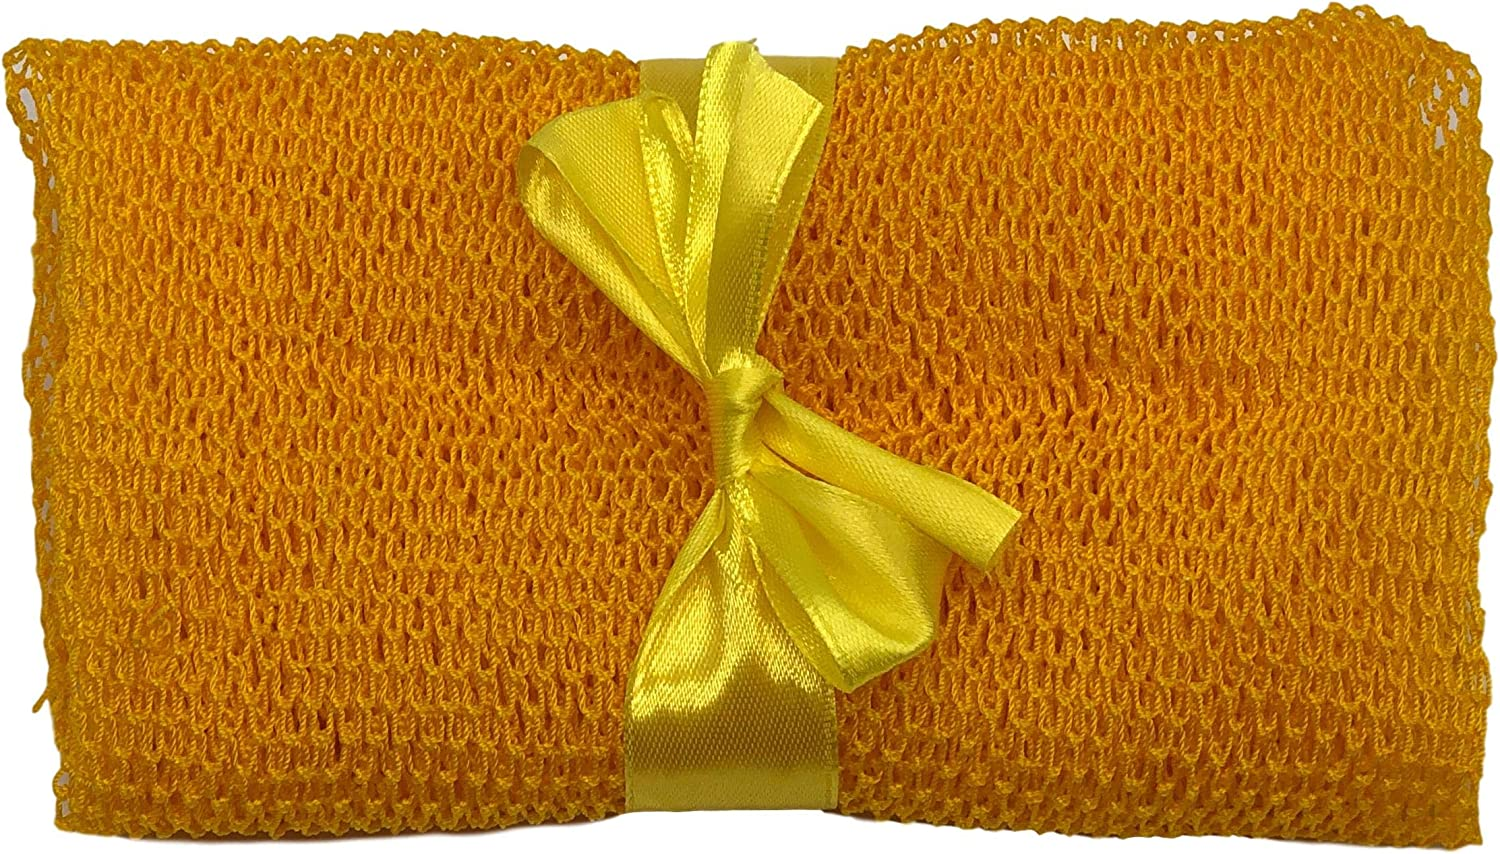 "Nature by EJN - Net Bath Sponge, Long, Skin Exfoliation, African, Porous (Yellow, 49"")"